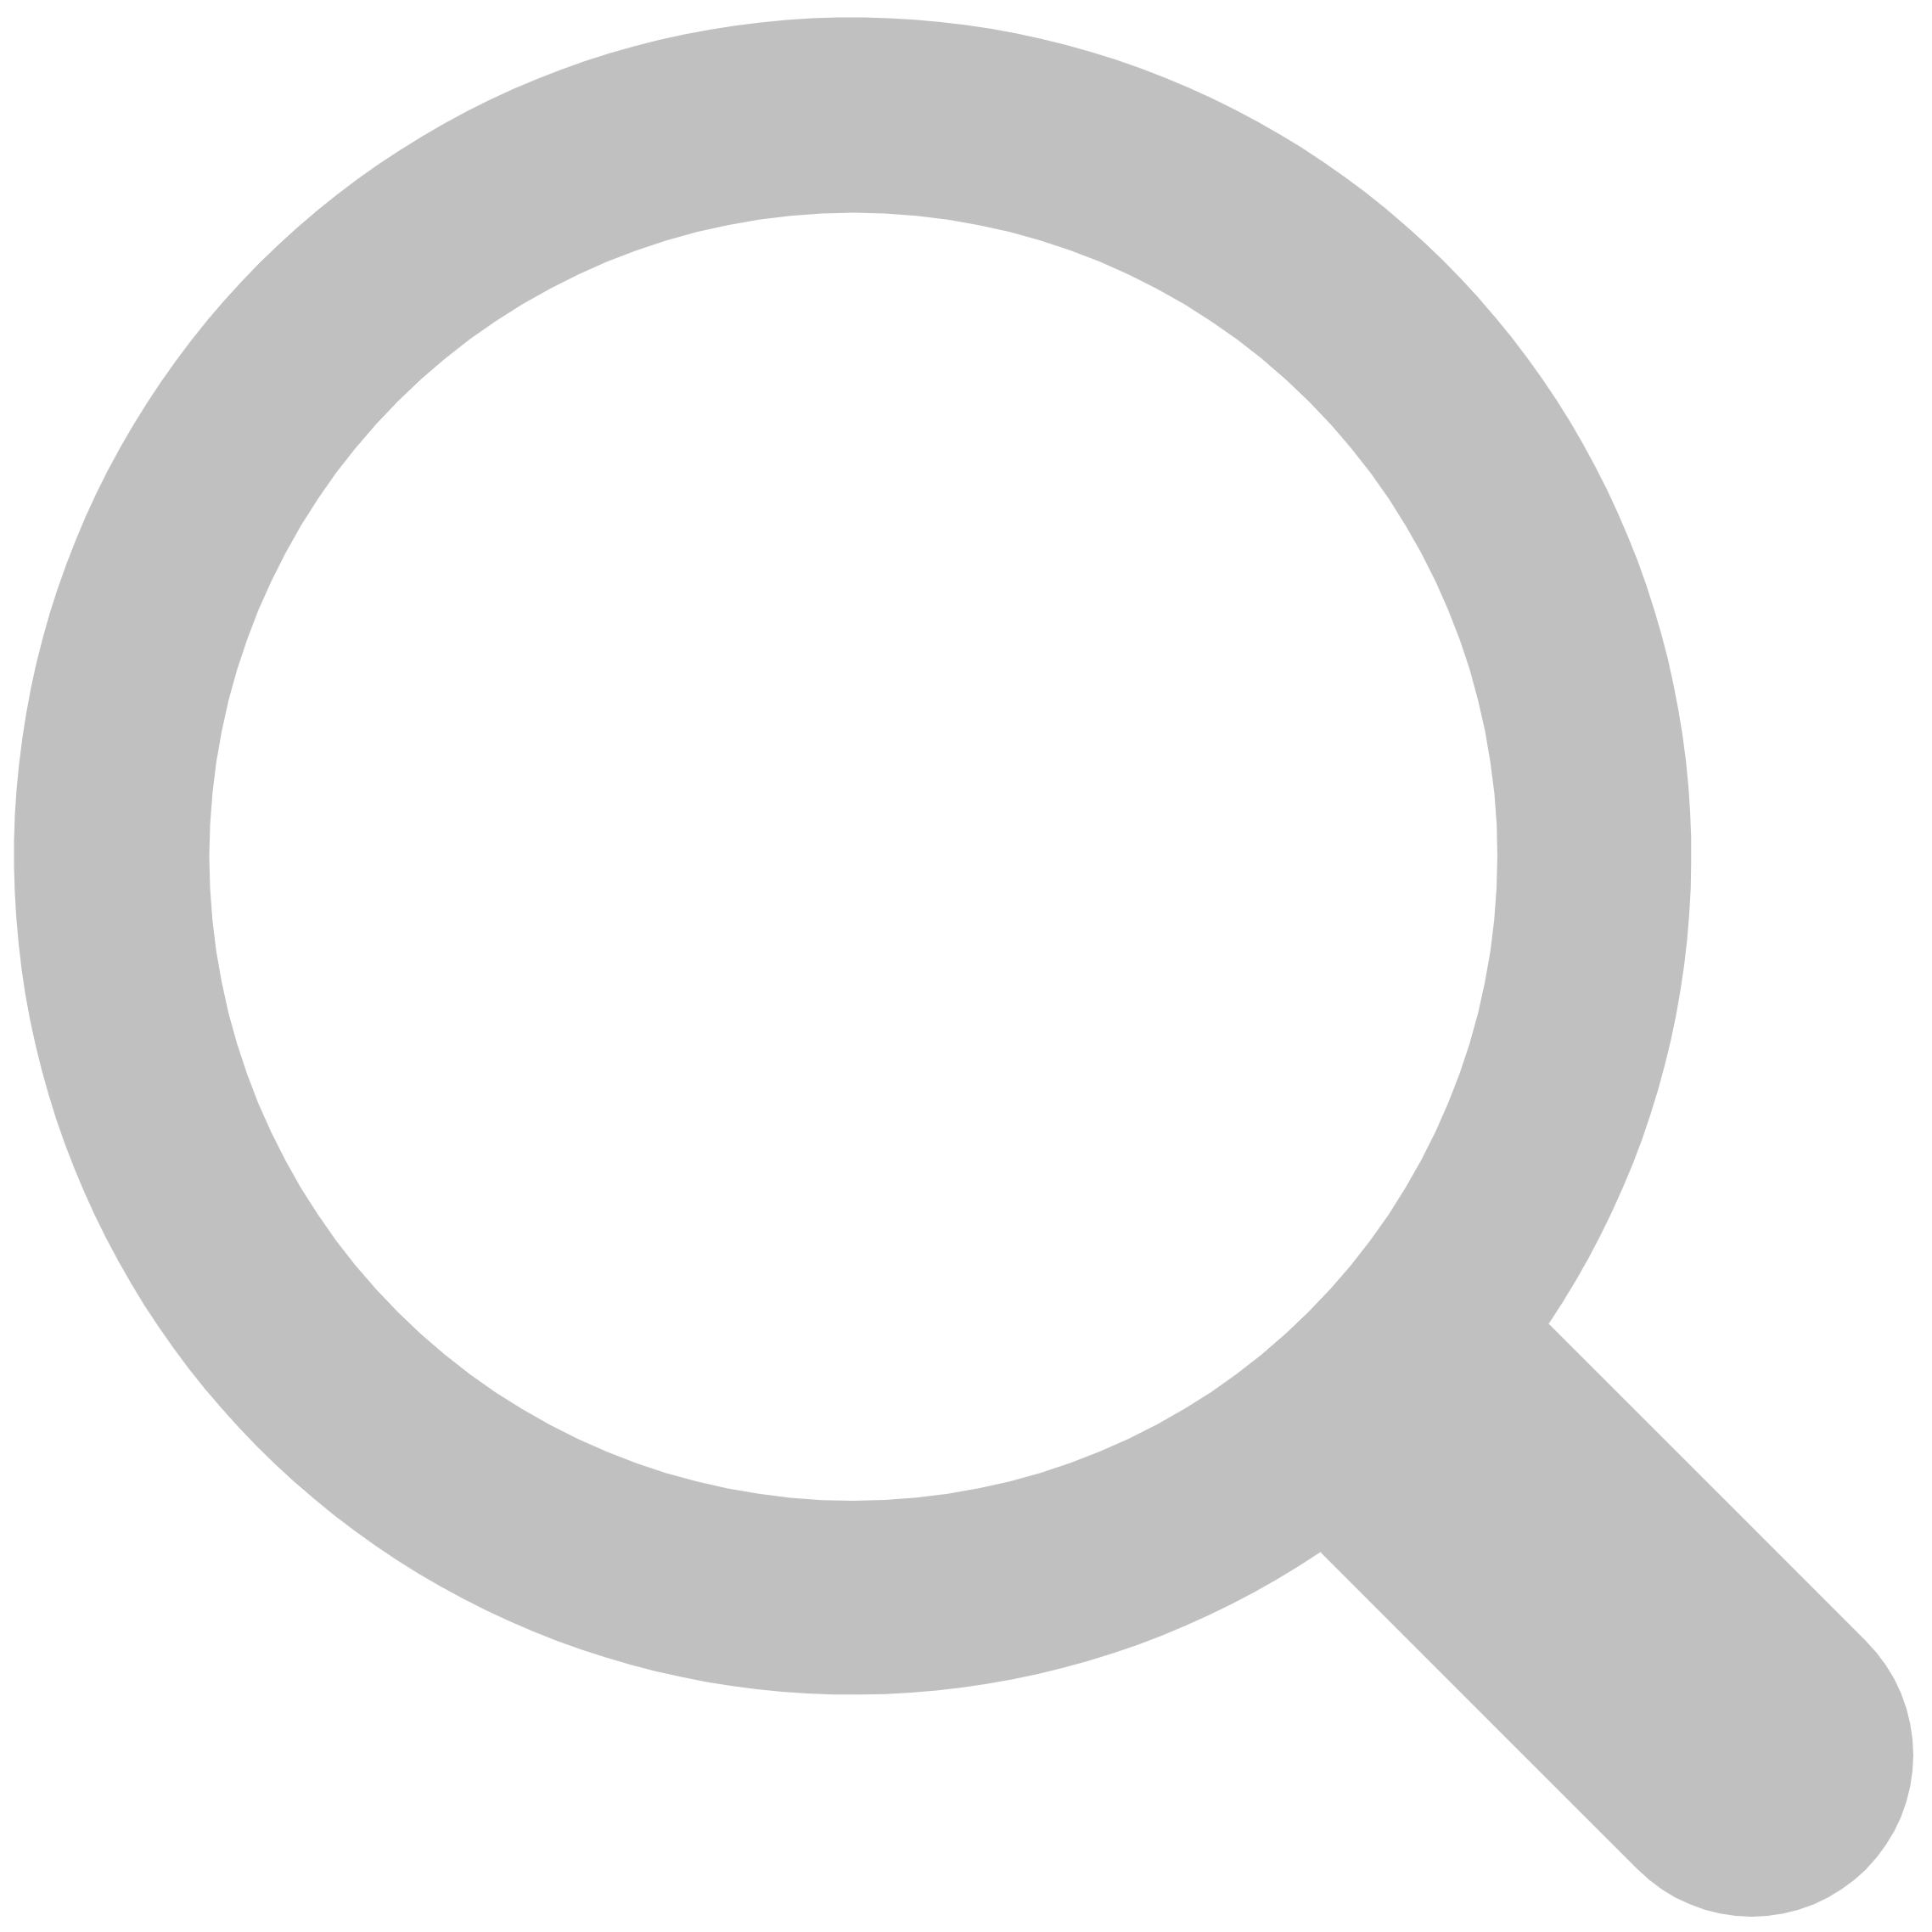 Search website